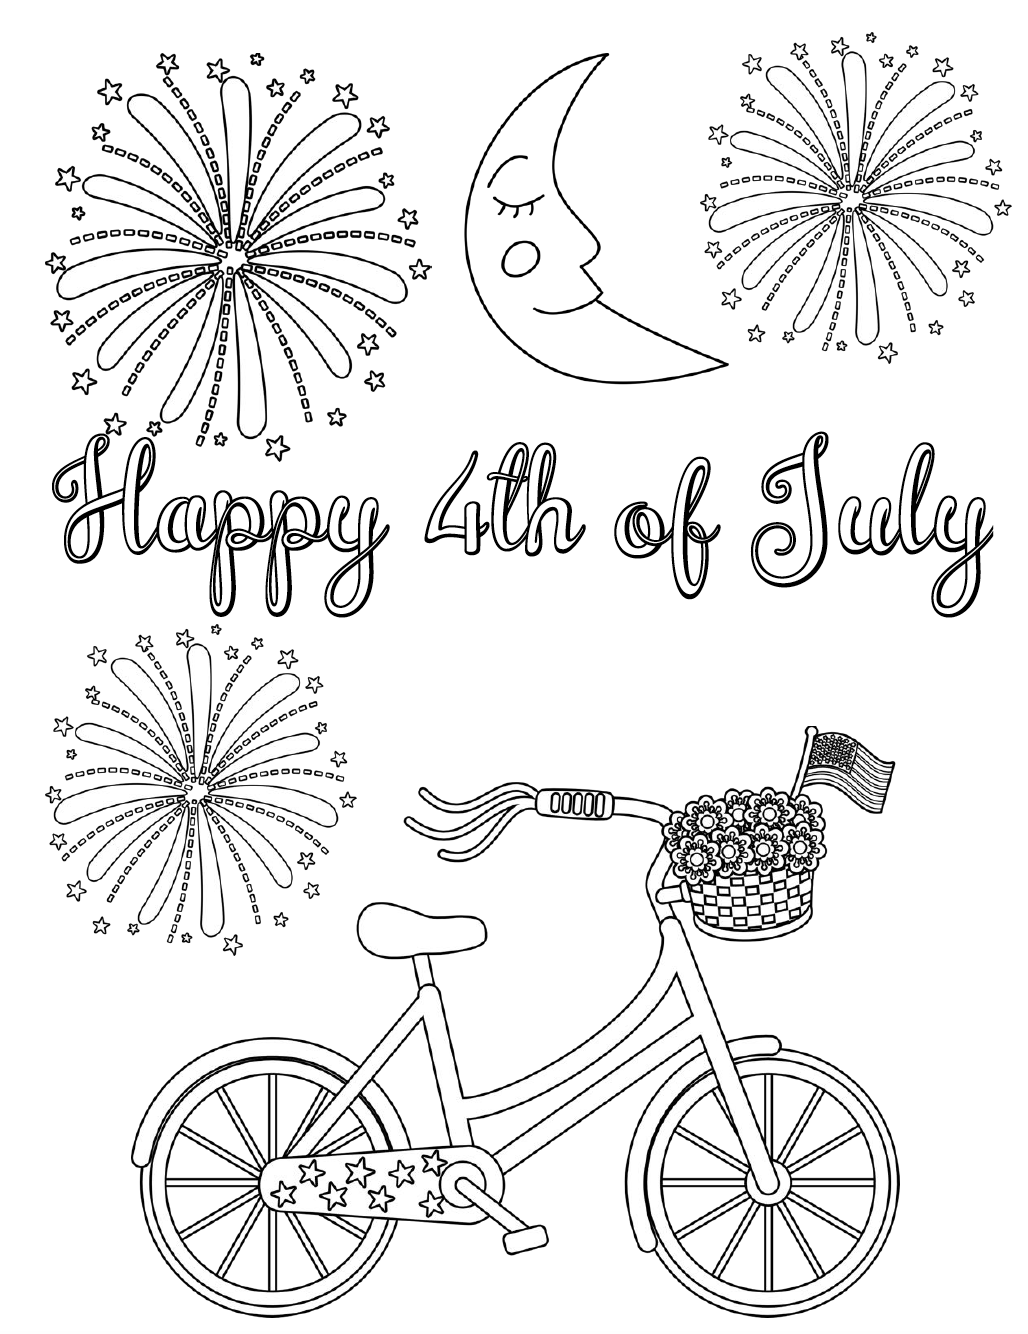 Free Printable Fourth of July Coloring Pages. 4 different designs, patriotic July 4th coloring pages for Independence Day. Just print and enjoy!